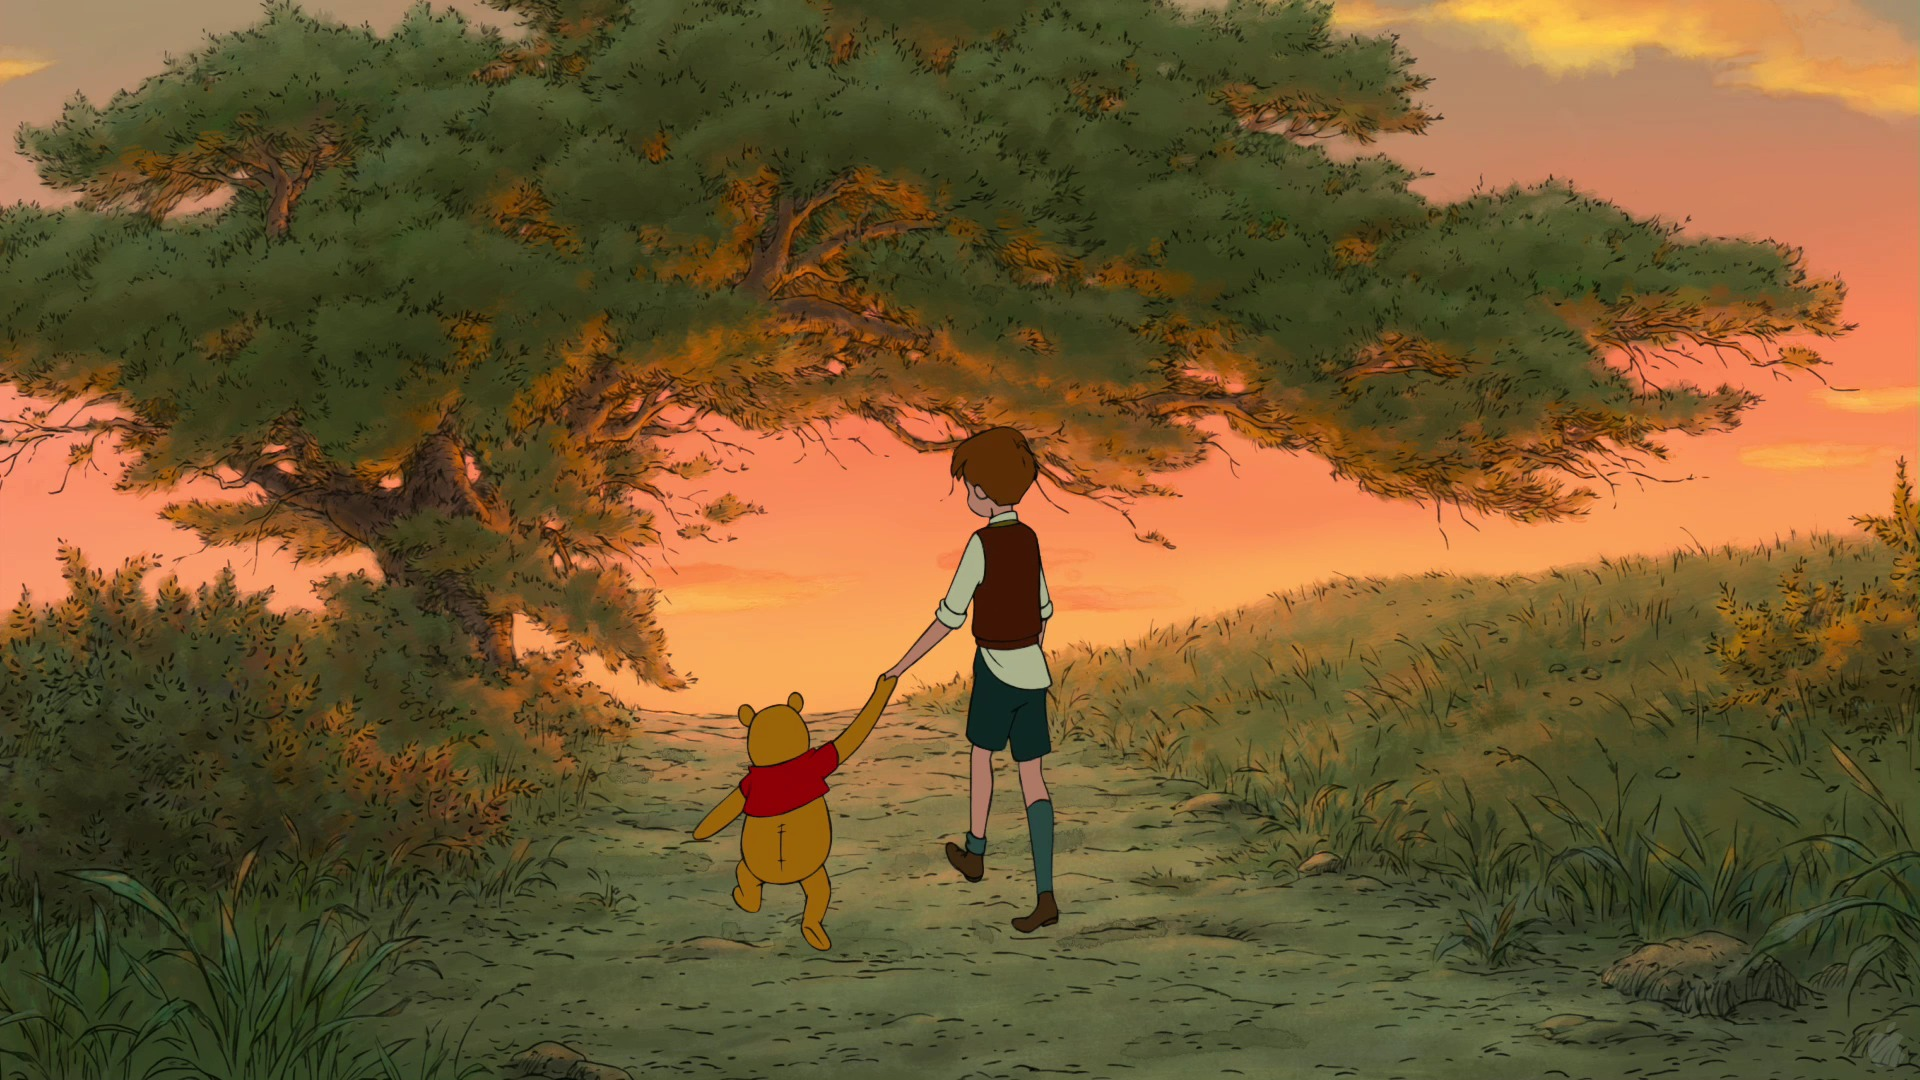 Famous winnie the pooh wallpaper winnie the pooh free desktop wallpapers for widescreen hd and voltagebd Gallery